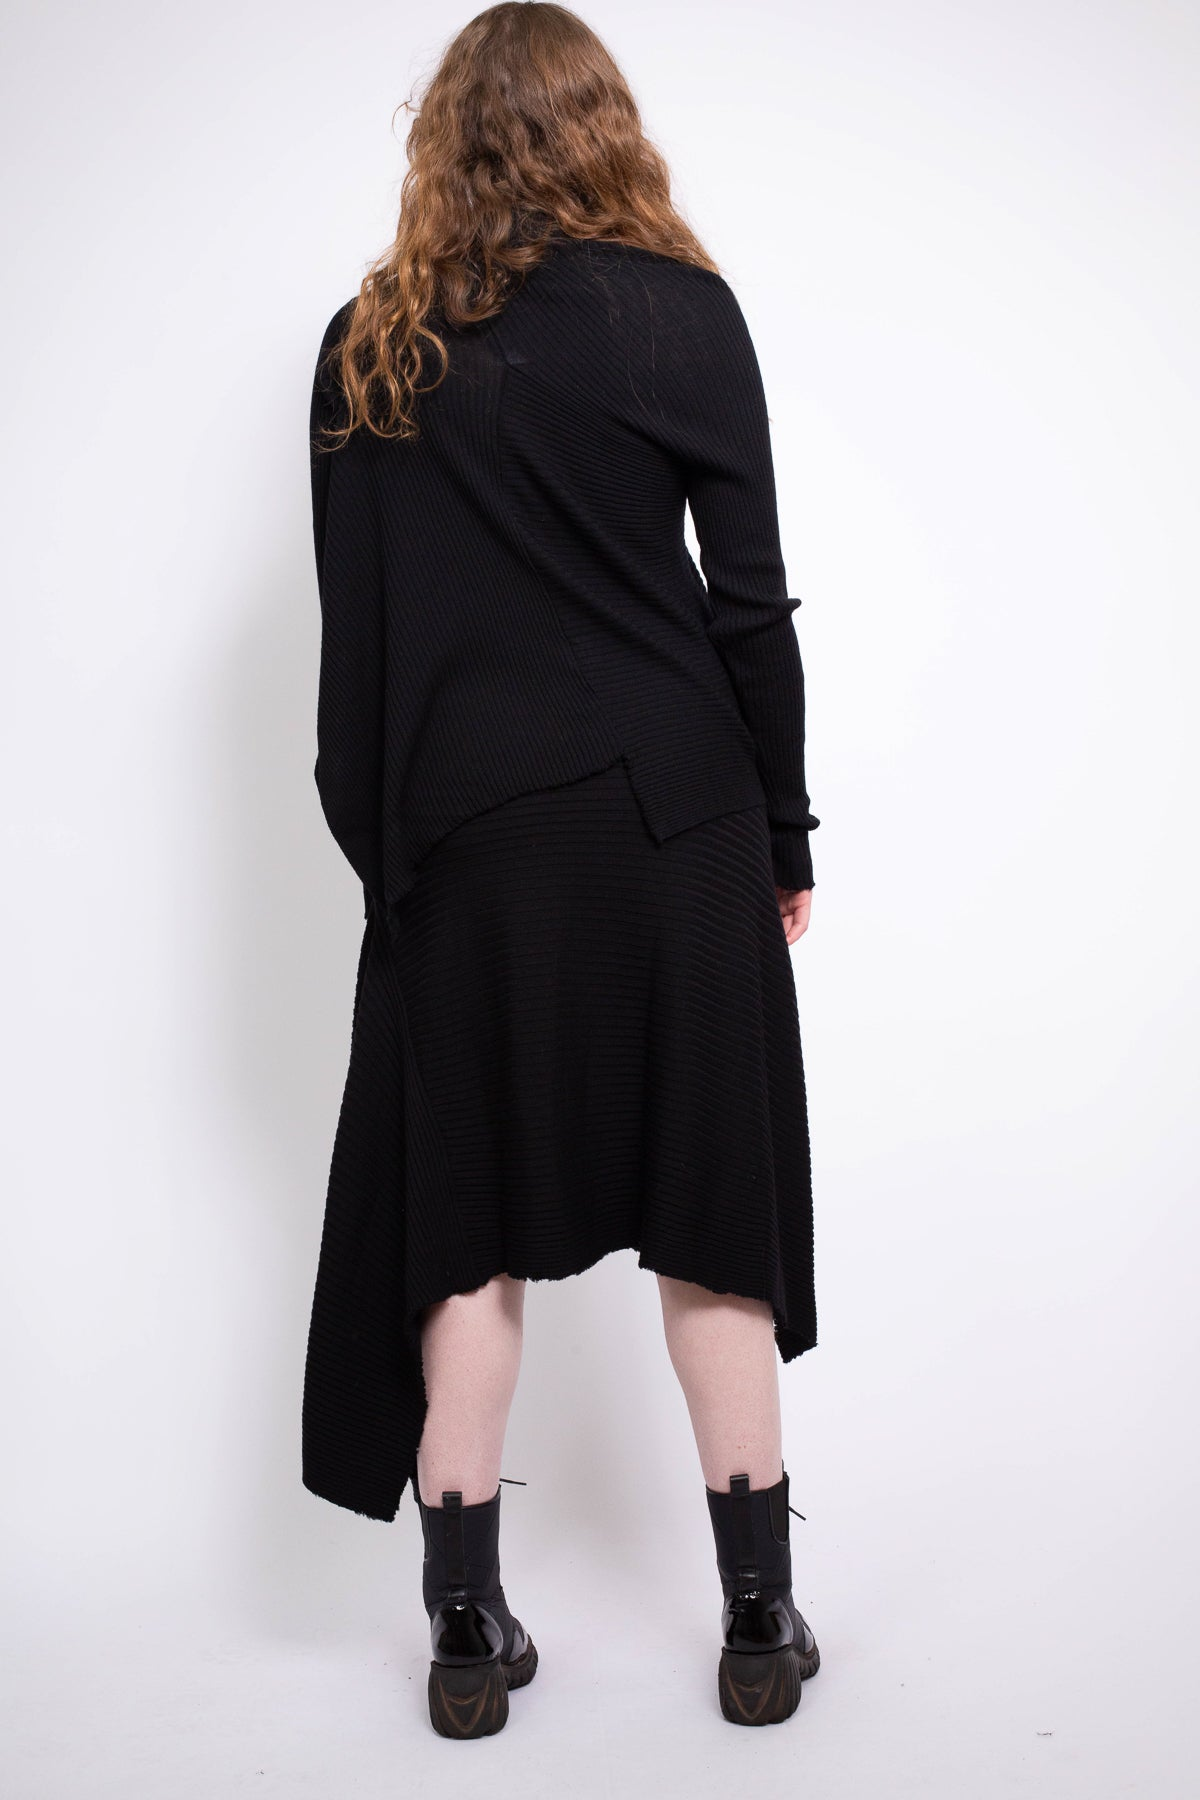 CLASSIC M'A DRAPED MERINO SKIRT IN BLACK